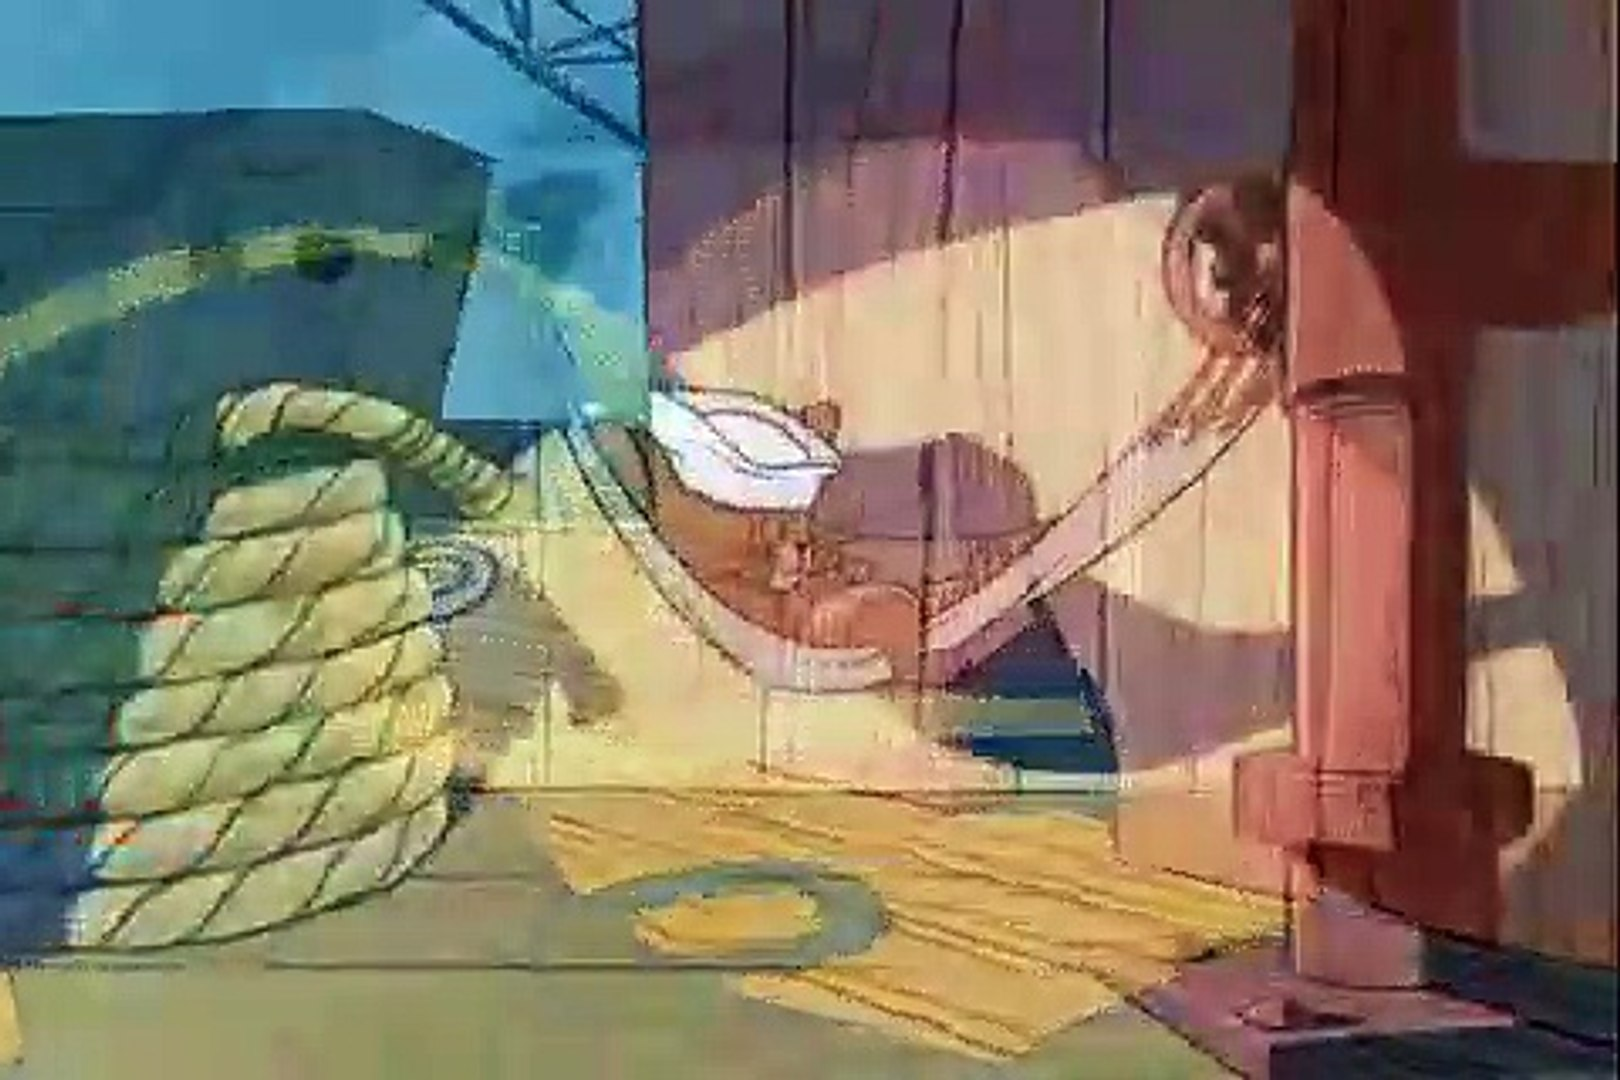 Tom and Jerry Classic Collection Episode 147 - 148 Puss'n'Boats (1966) - Filet Meow (1966)